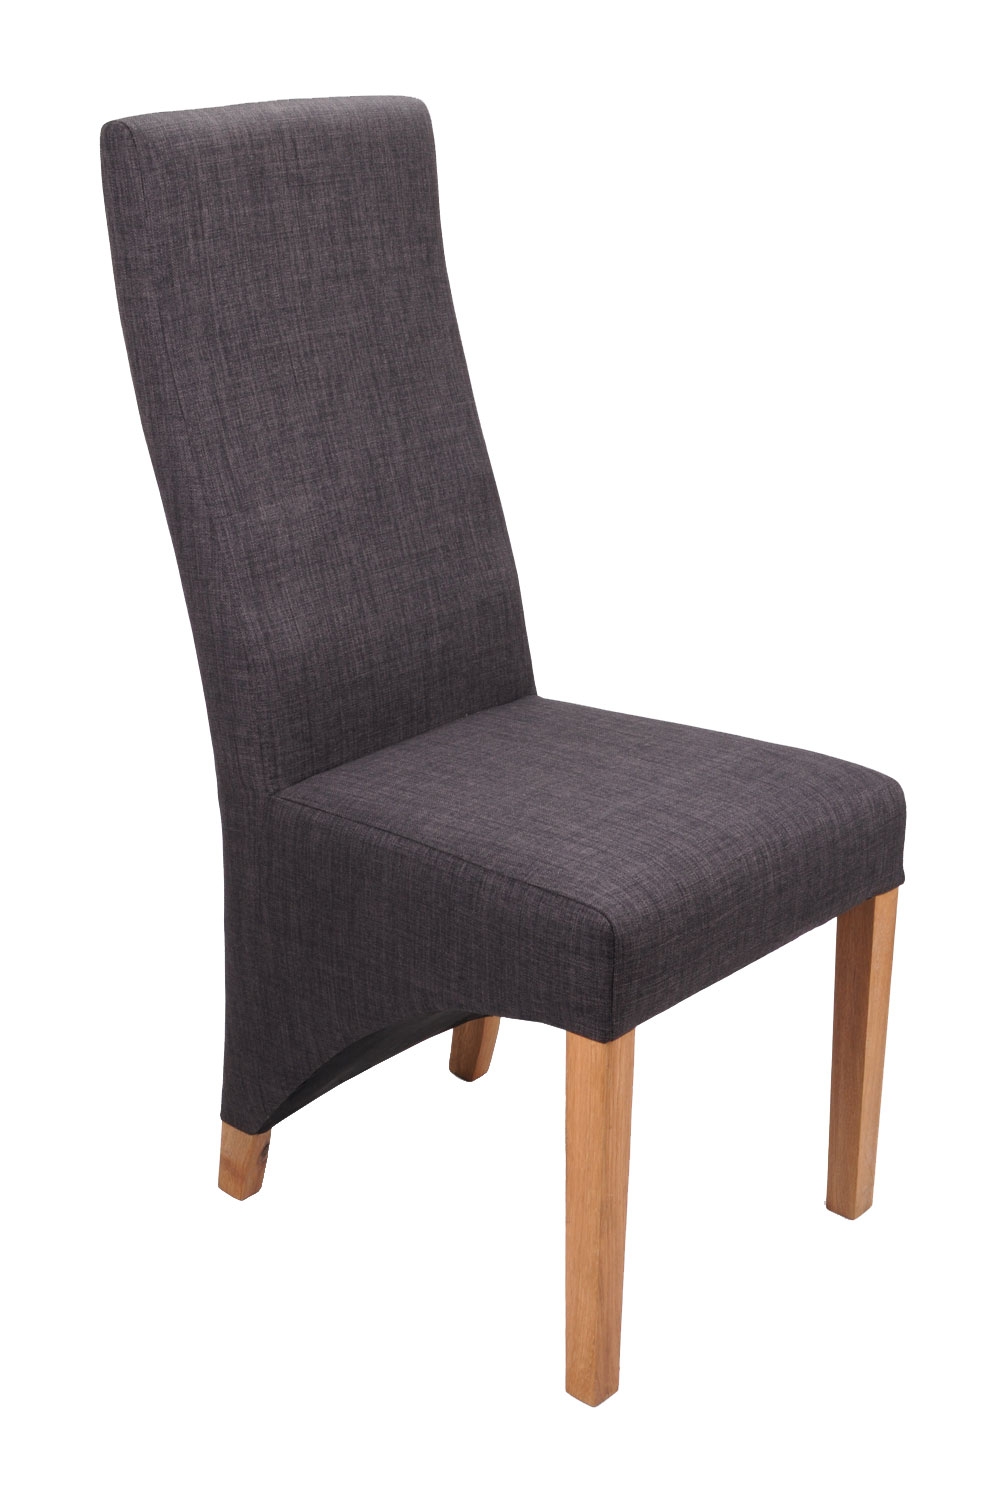 Abella Charcoal Fabric Dining Chairs (Pair)